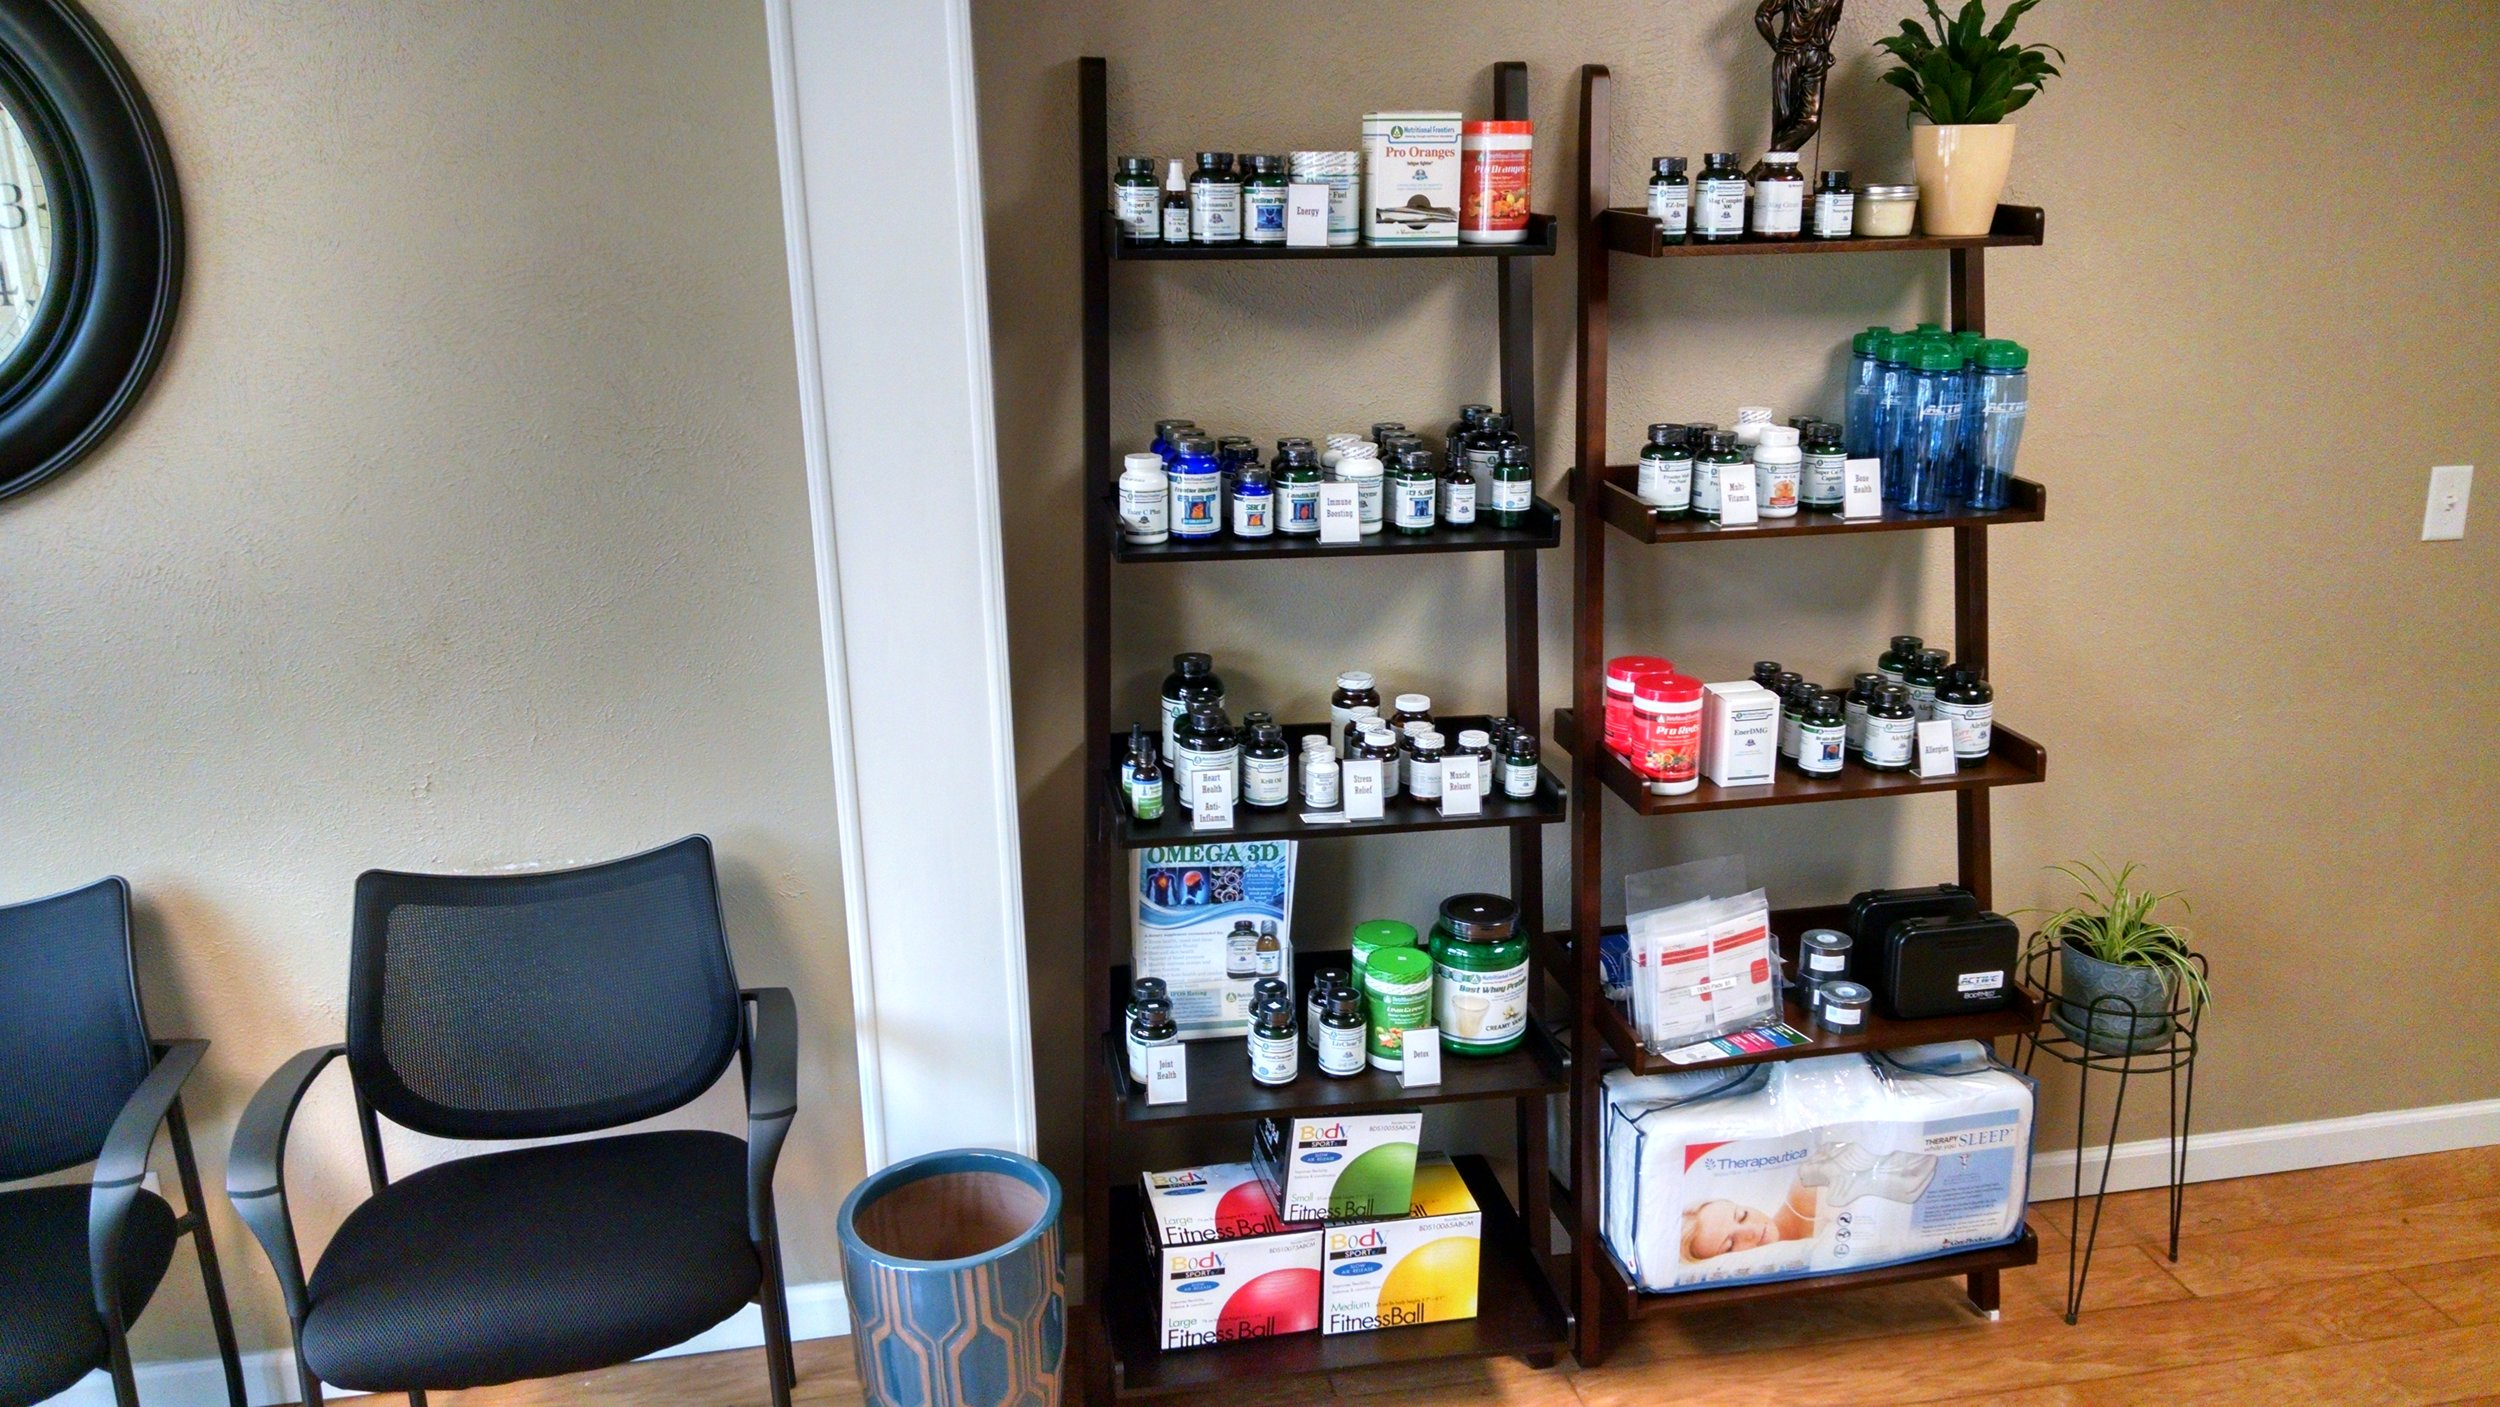 Chiropractic Pillows, Anti-Burst Exercise Balls, Biofreeze, Ice Packs, Supplements, and TENS Units.